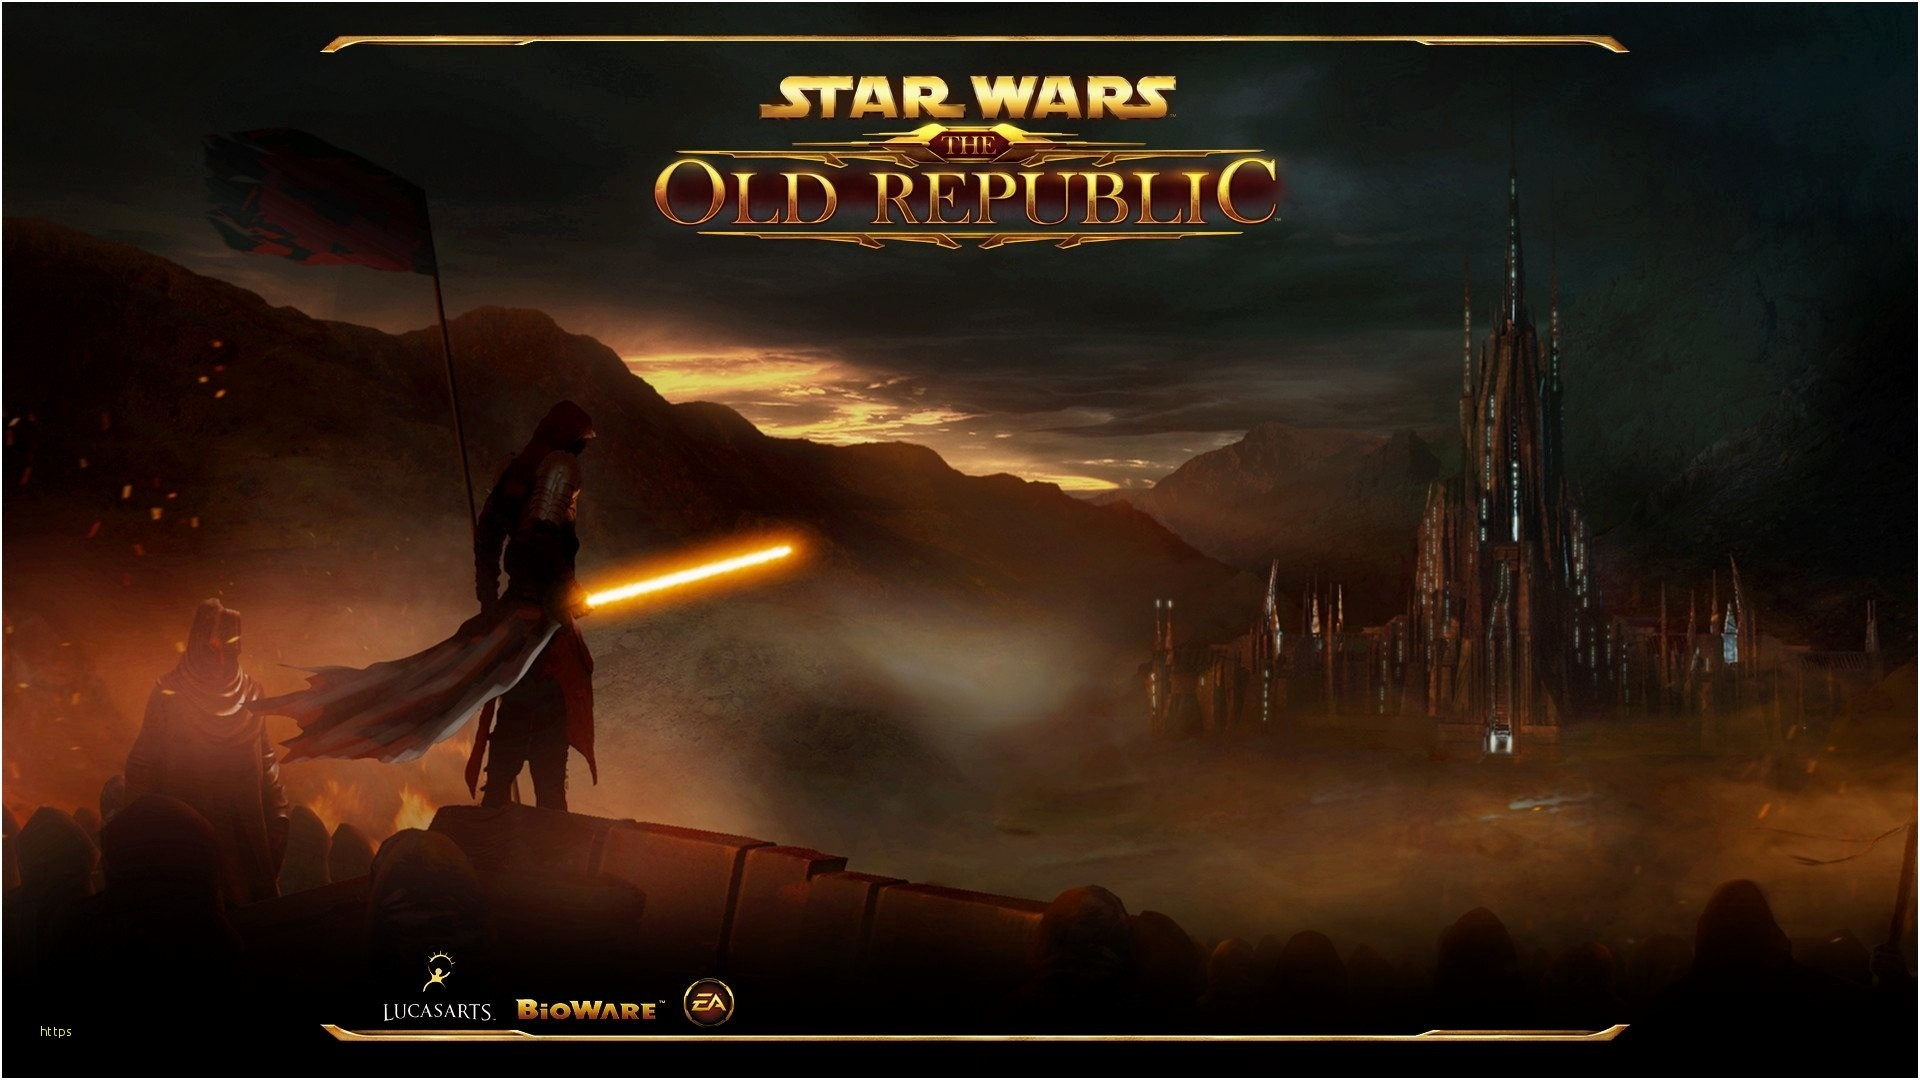 1920x1080 Star Wars the Old Republic Wallpaper Fresh Kotor 2 Wallpaper 69 Pictures